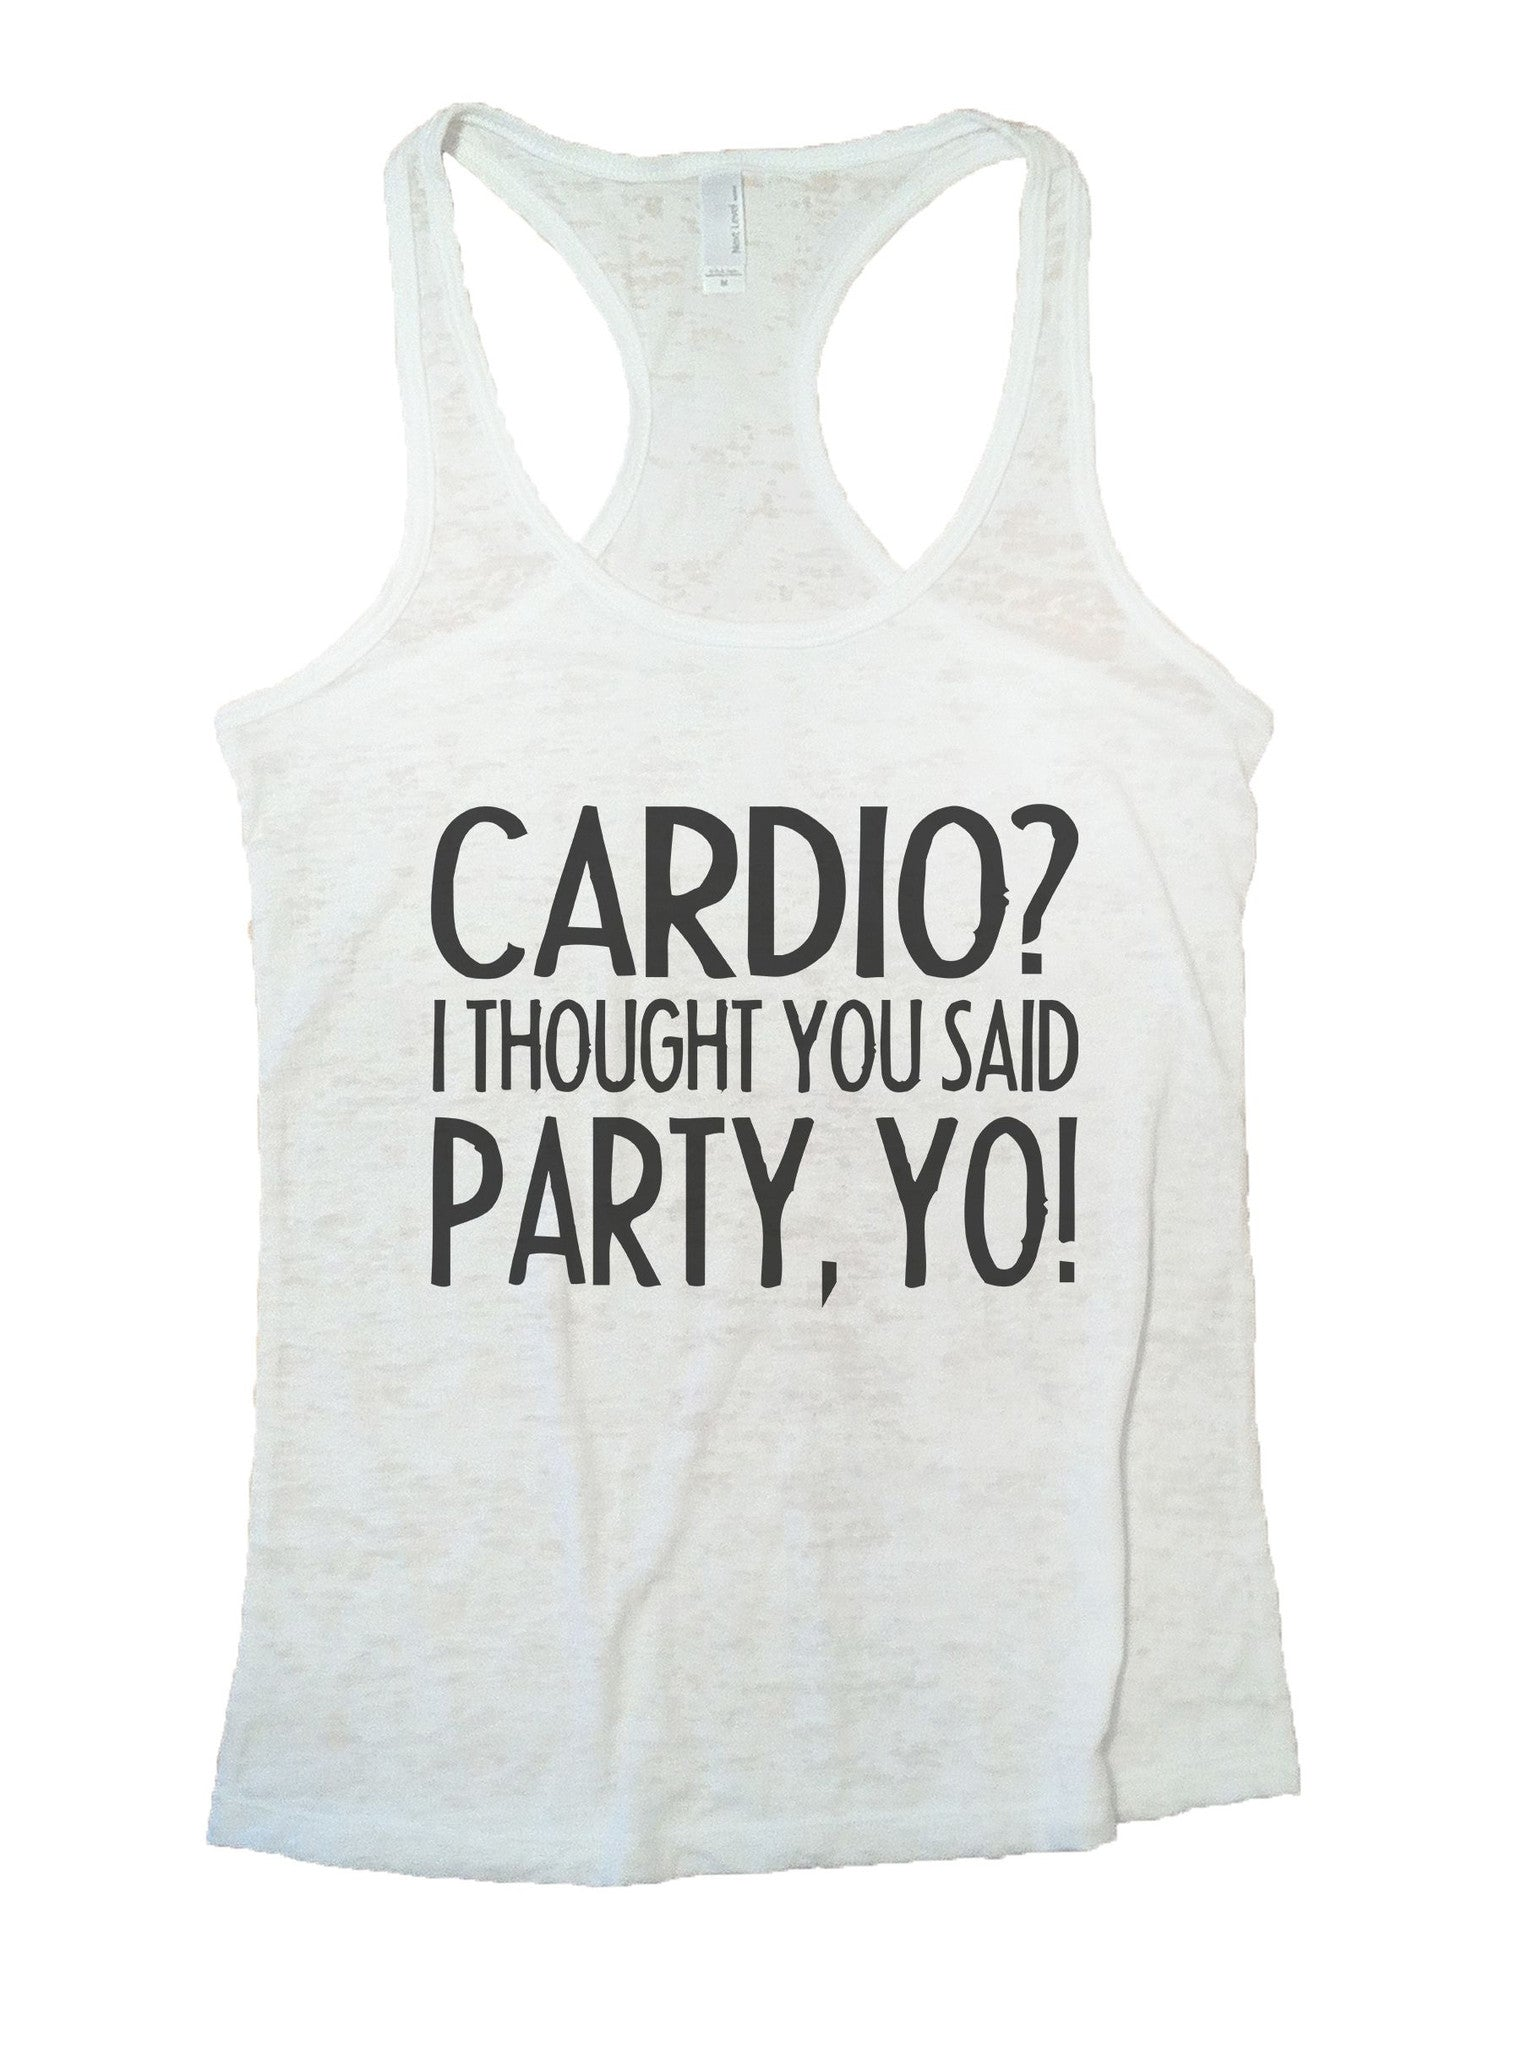 Cardio? I Thought You Said Party, Yo! Burnout Tank Top By BurnoutTankTops.com - 932 - Funny Shirts Tank Tops Burnouts and Triblends  - 3